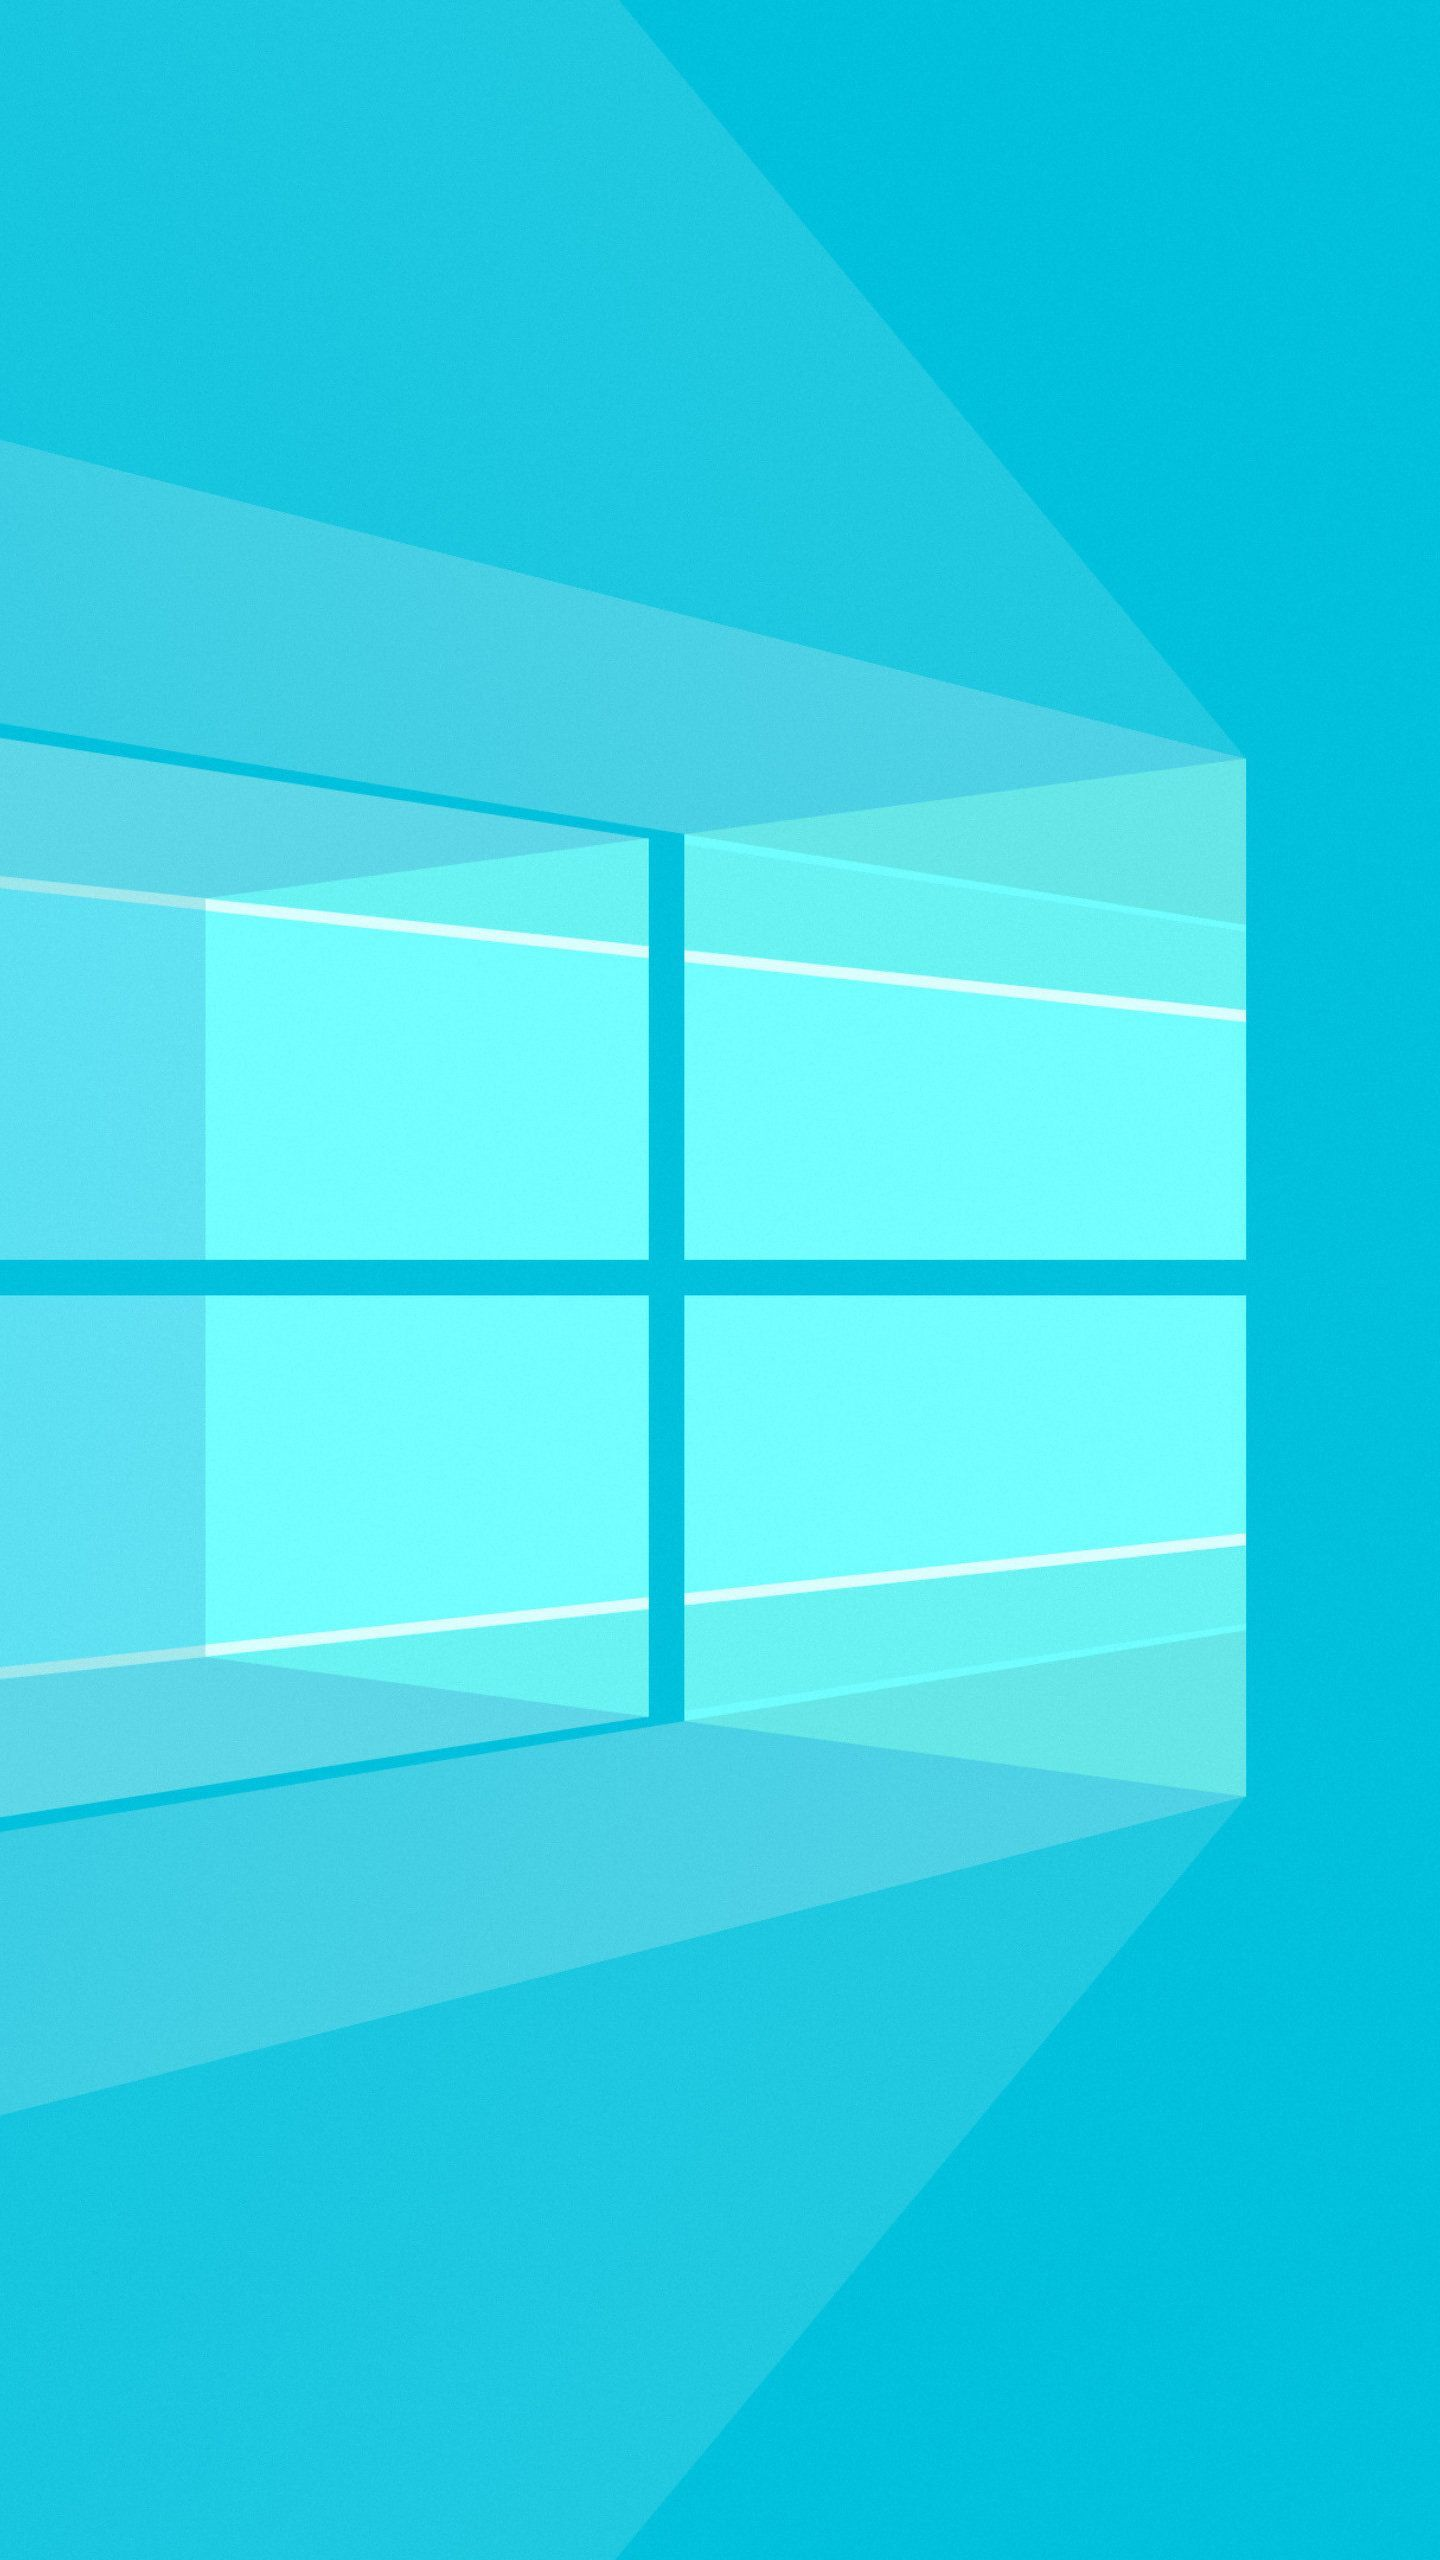 Windows 10 Minimalist 4k Hd Computer Wallpapers Photos And In 2020 Cool Desktop Wallpapers Samsung Wallpaper Computer Wallpaper